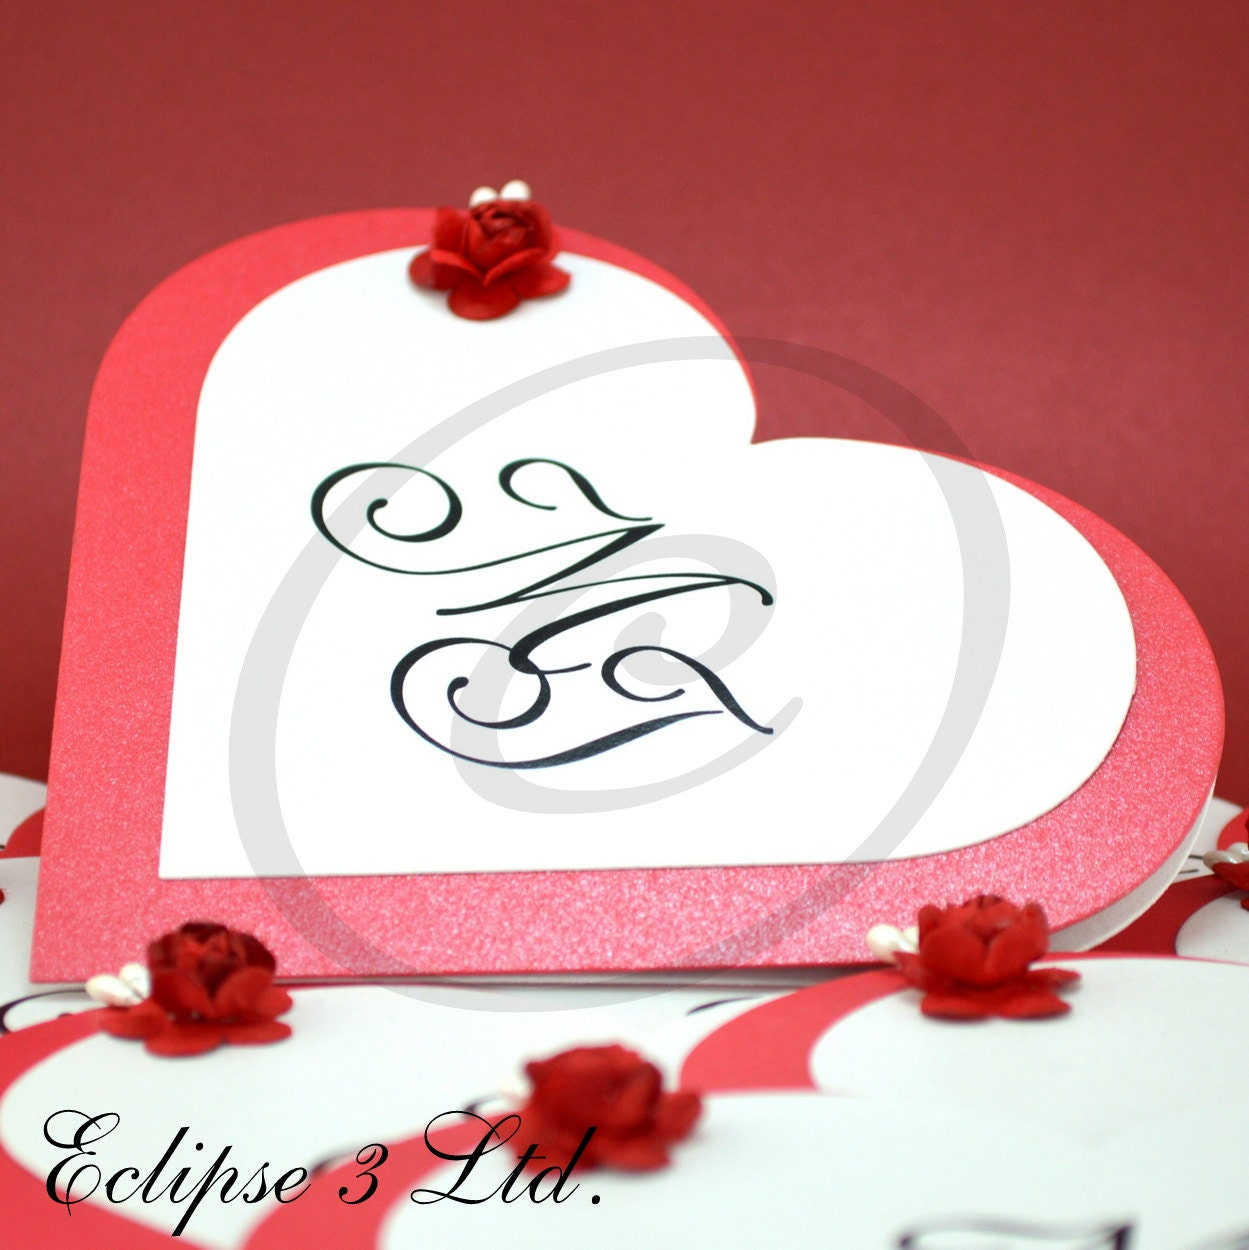 50 pcs Heart shaped wedding invitations with paper rose ...